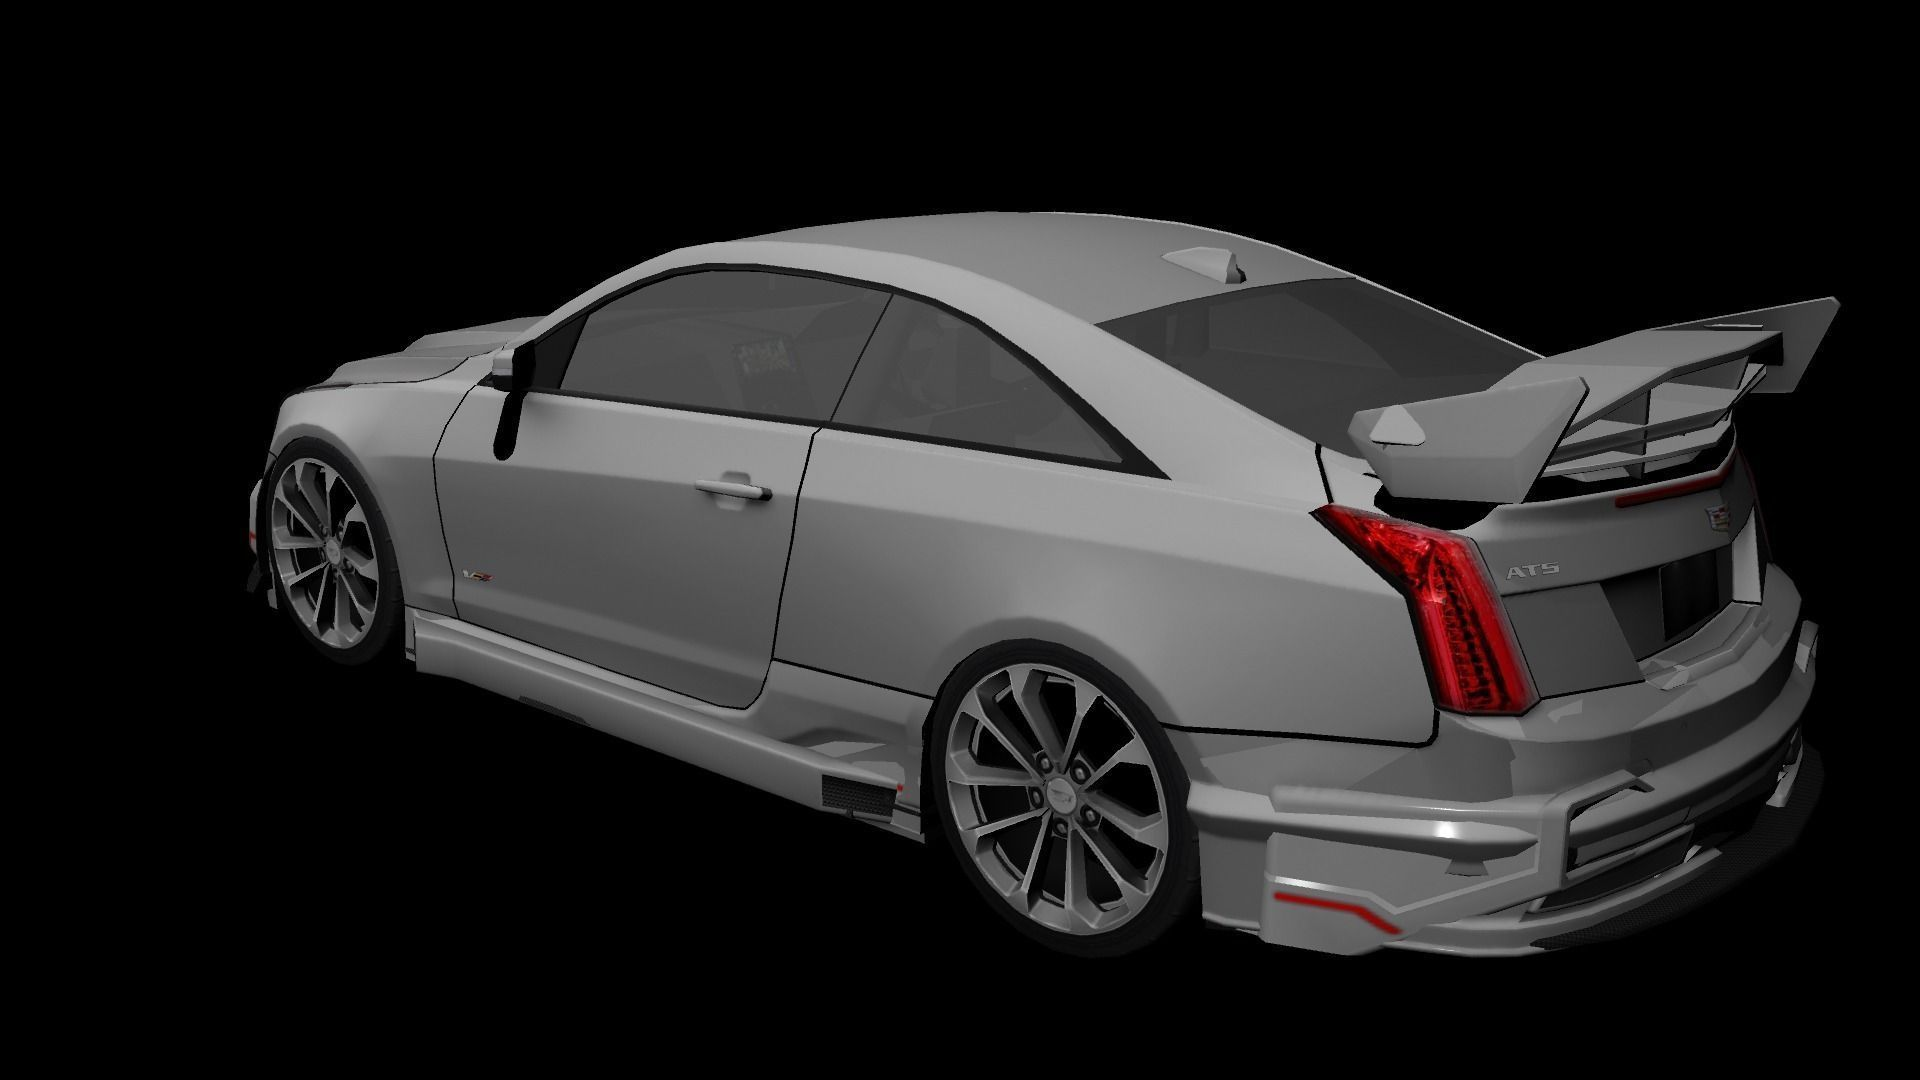 cadillac ats v coupe 2016 custom 3d model game ready ma mb tga. Black Bedroom Furniture Sets. Home Design Ideas